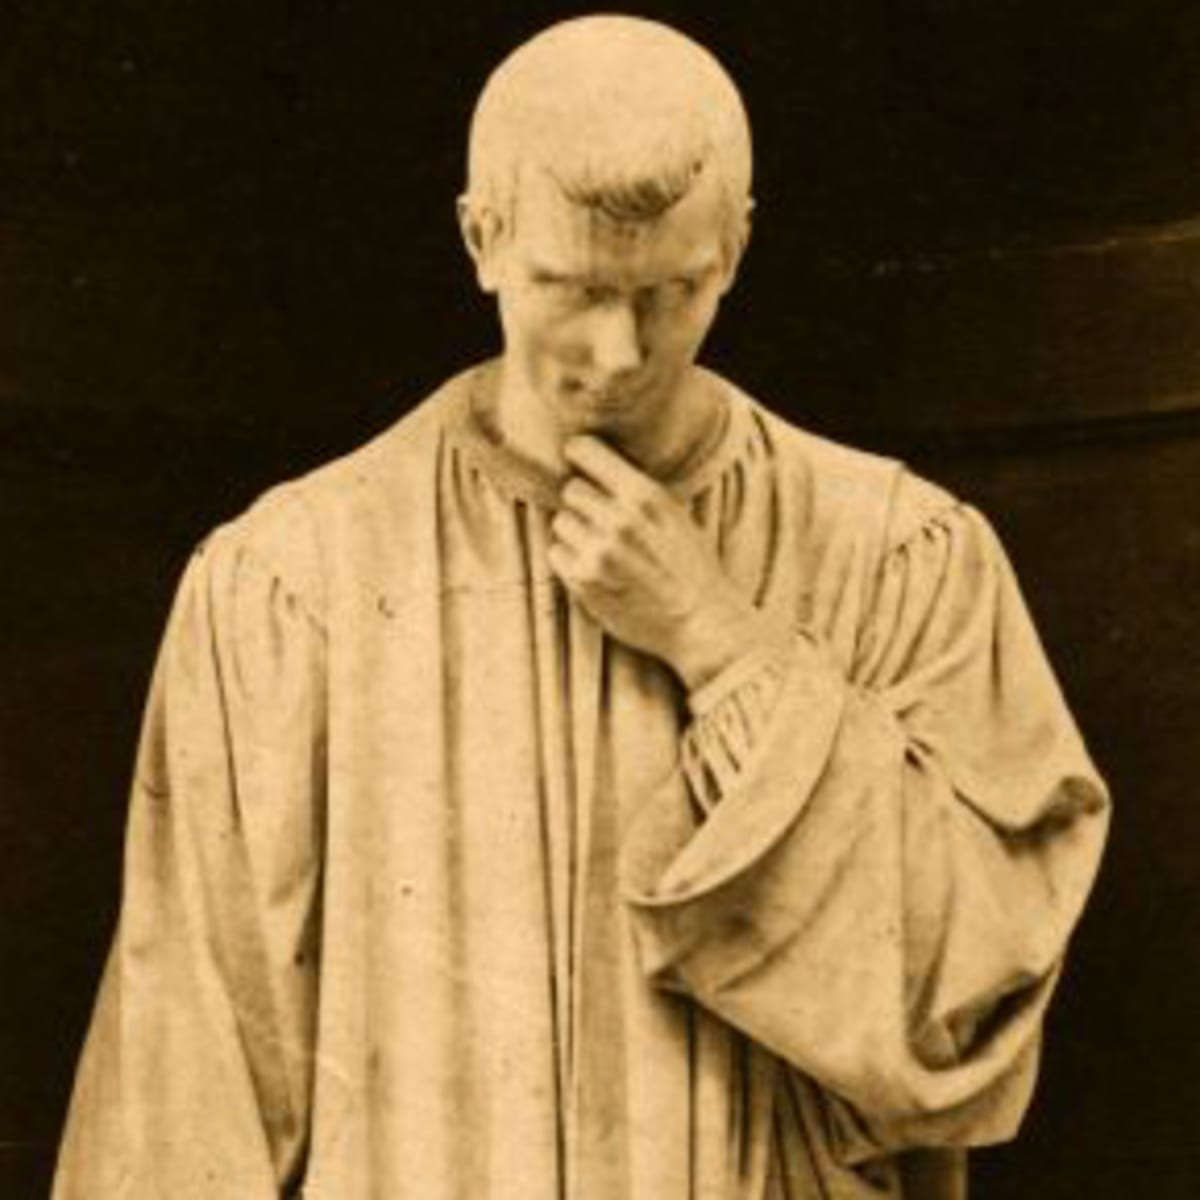 Machiavelli - The Prince, Quotes & The Art of War - HISTORY